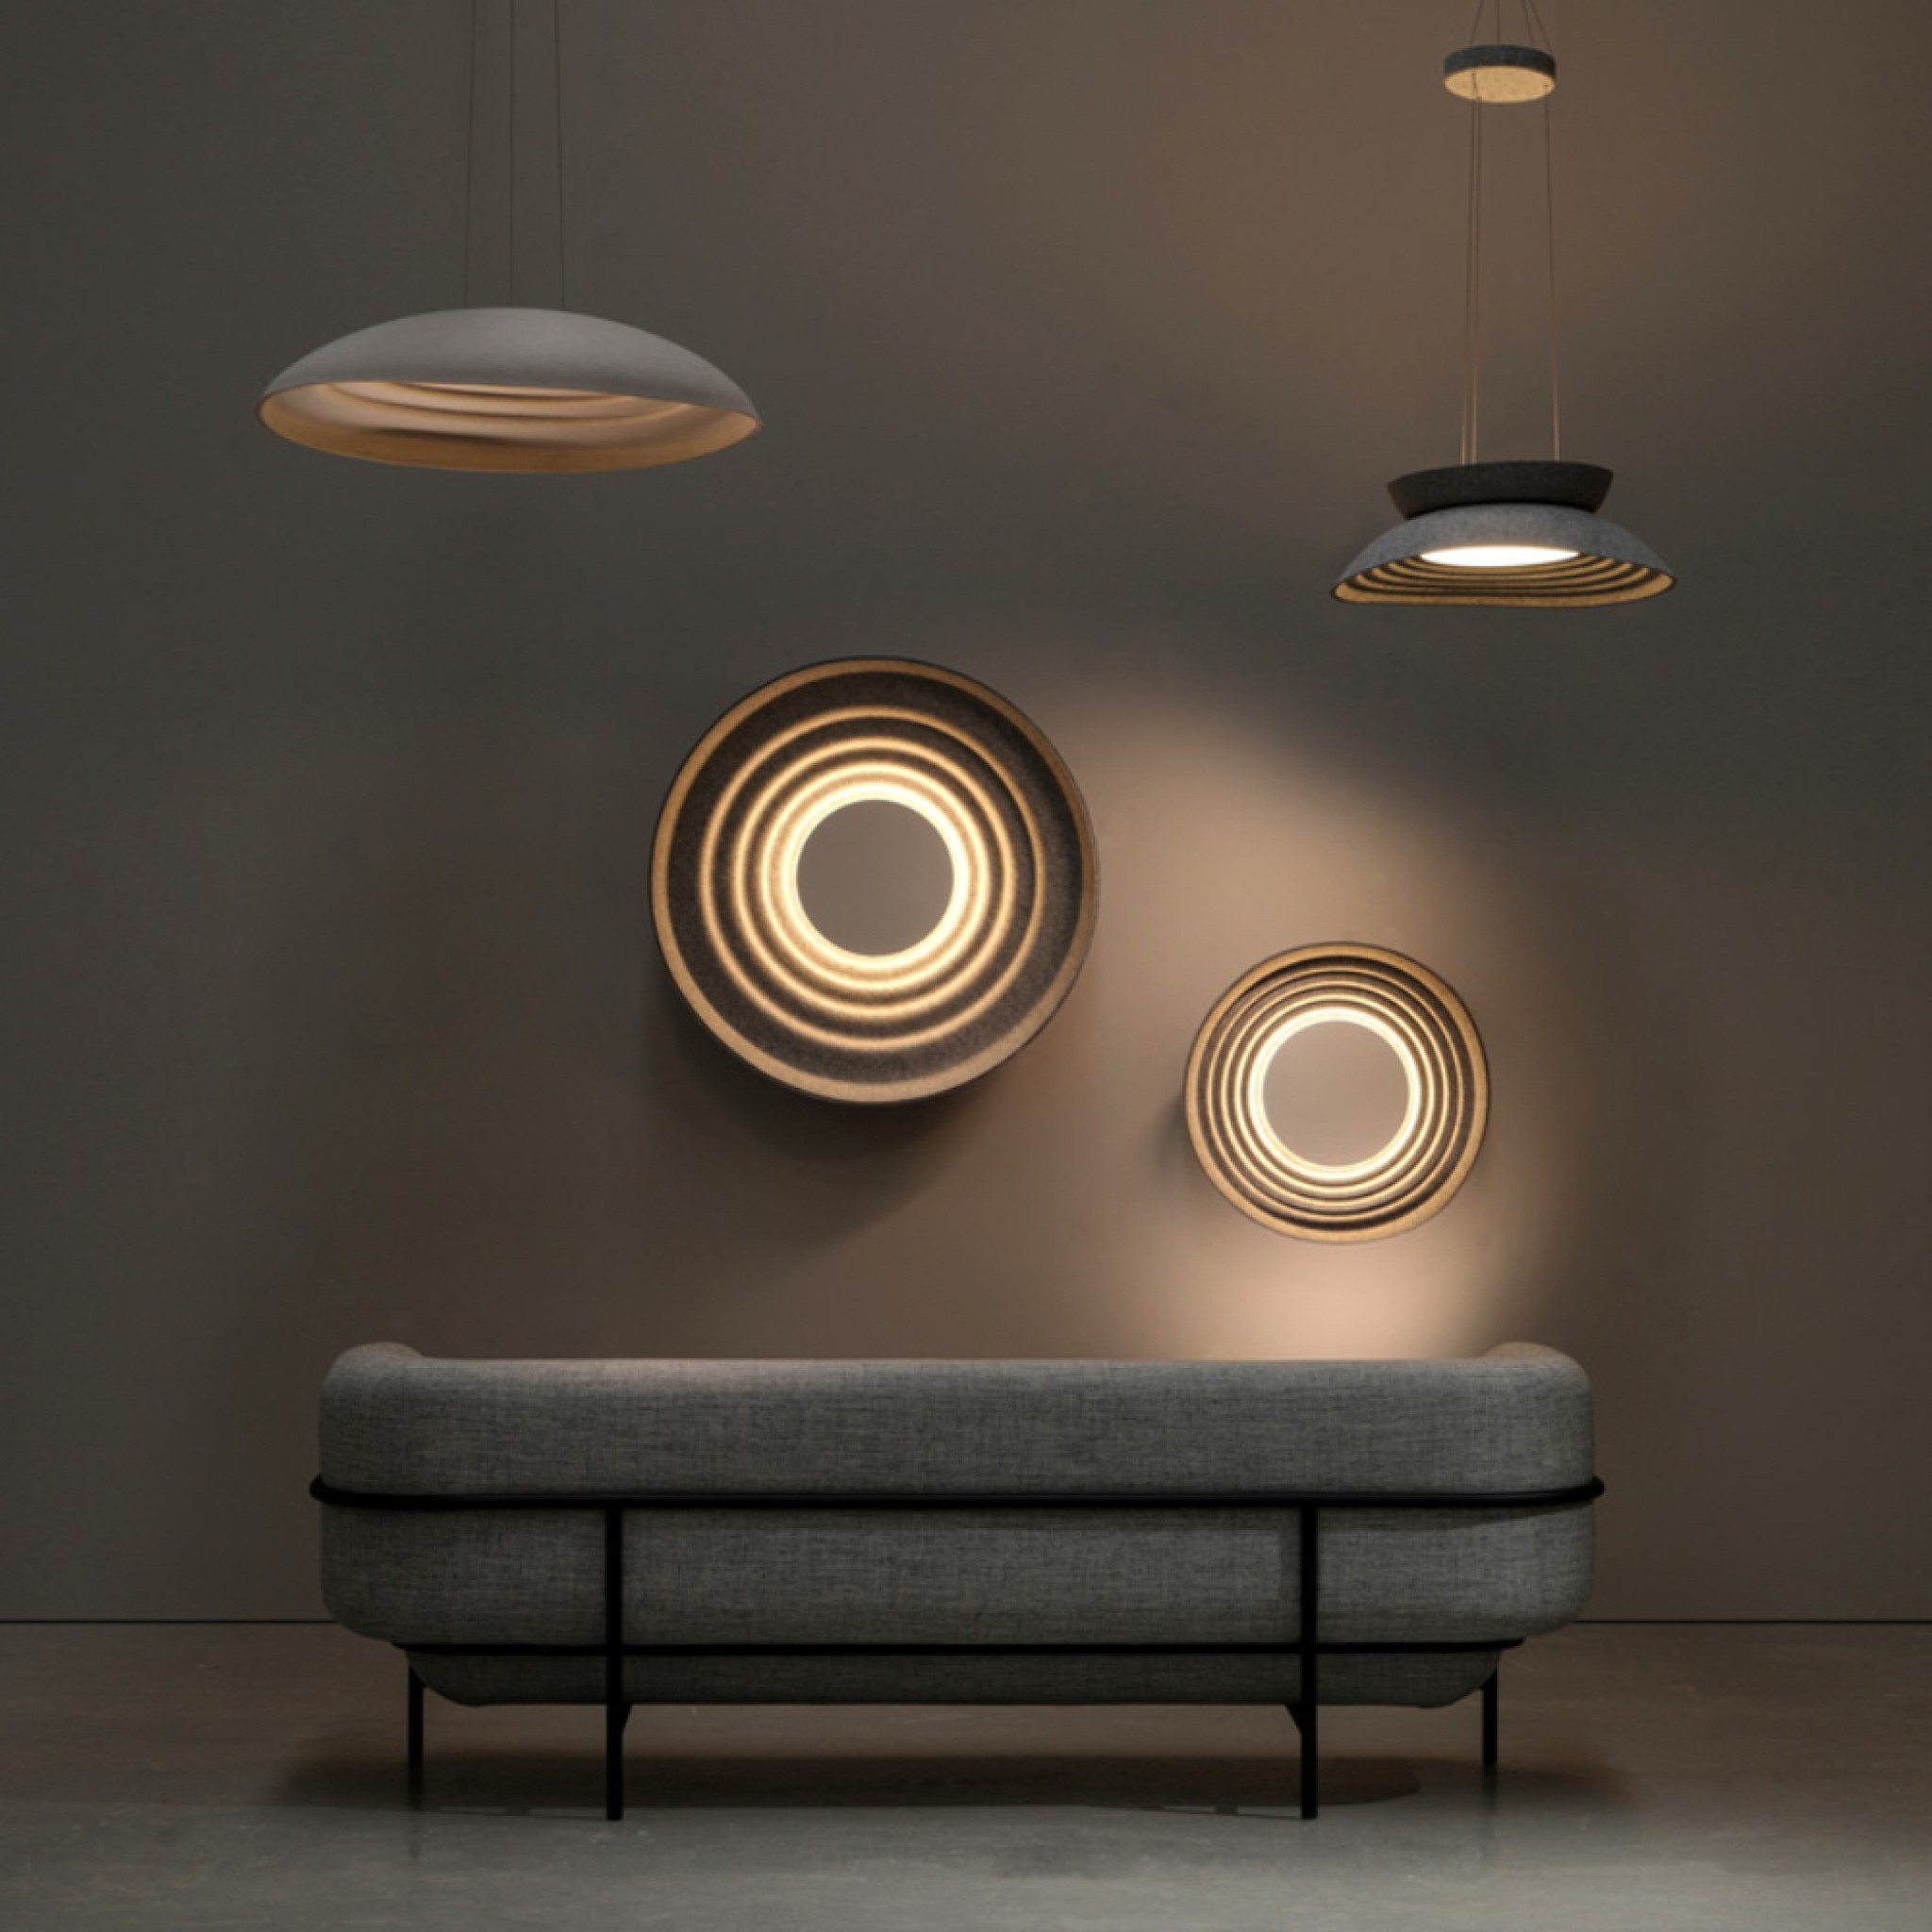 Sparkle Acoustic Lighting Collection by Ali Berkman for Feltouch